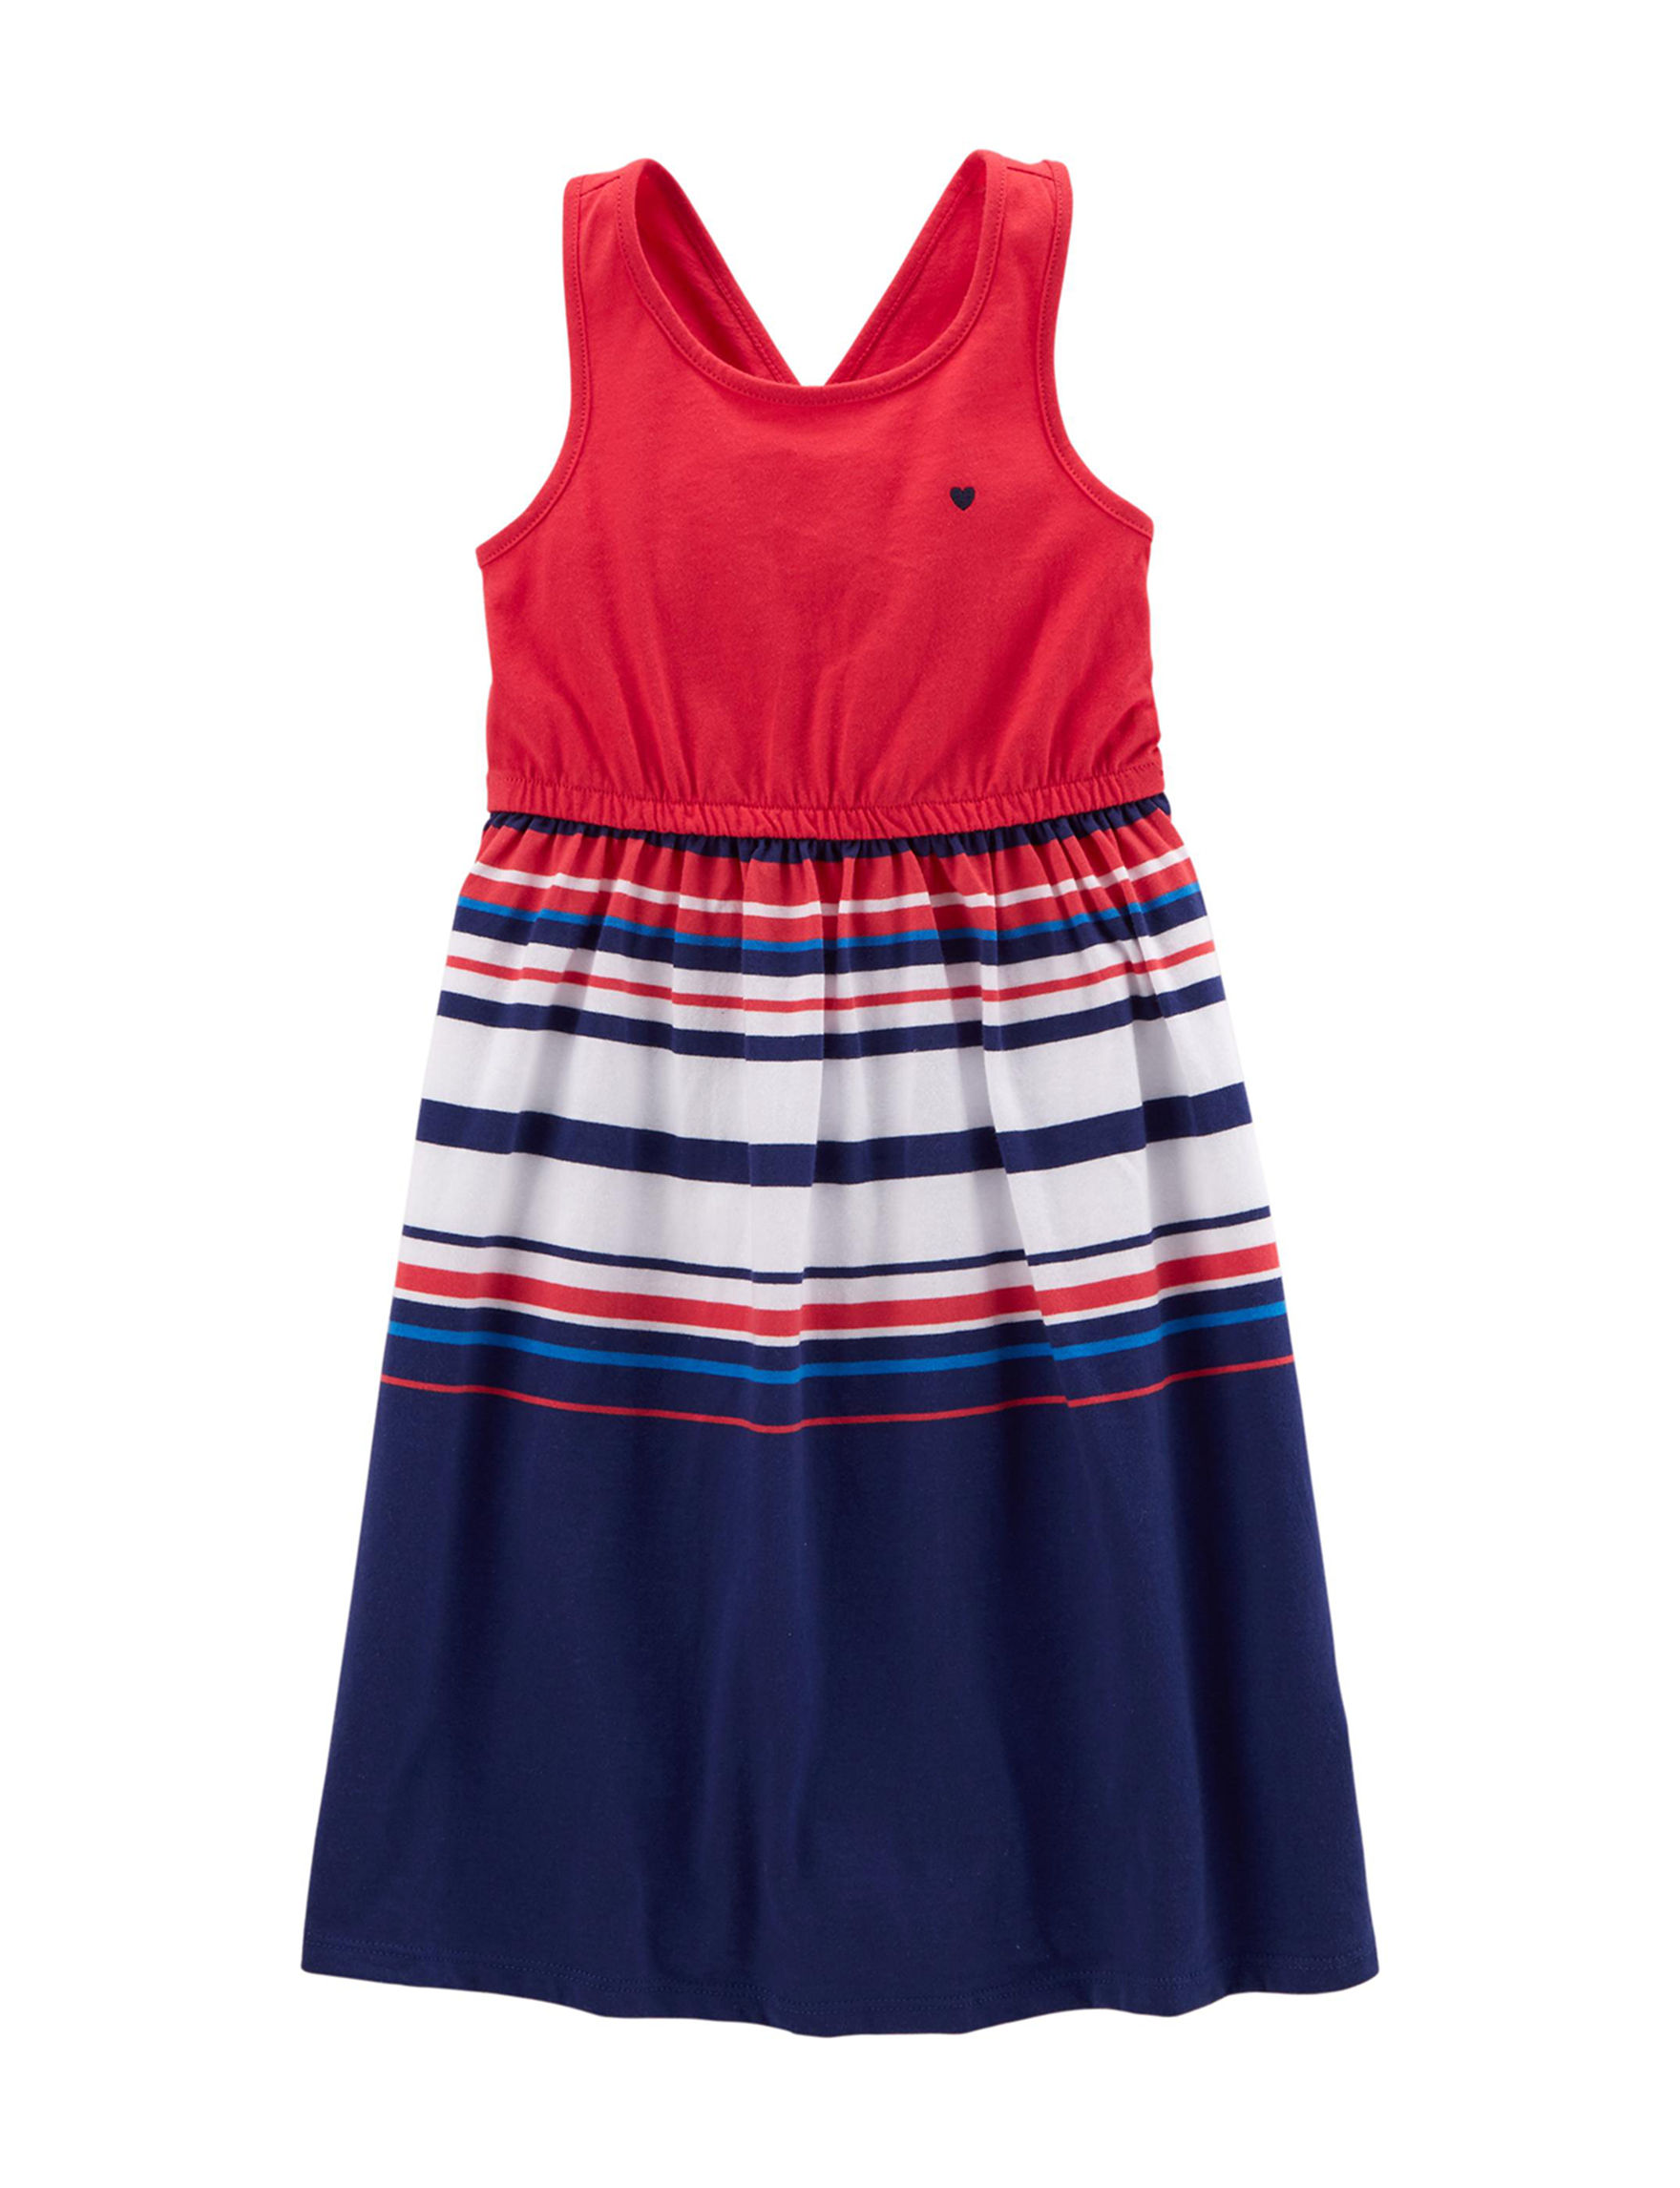 Carter's Red / White / Blue